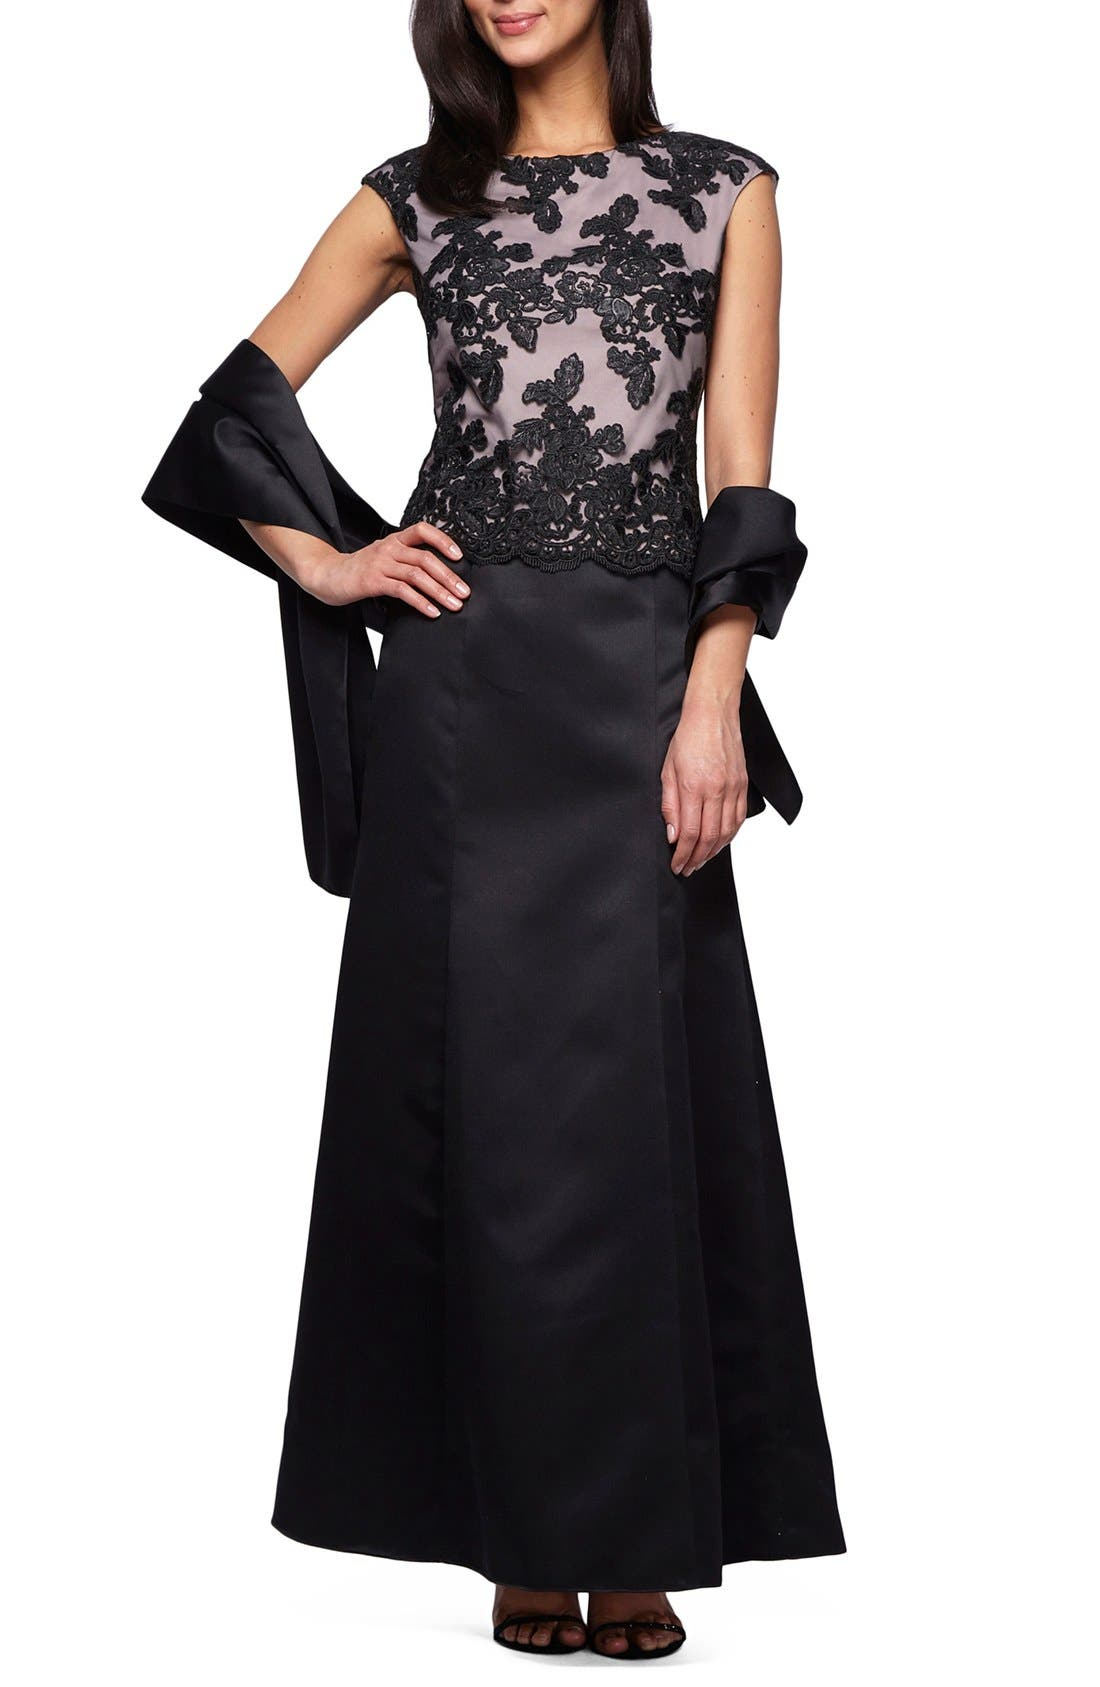 Alternate Image 1 Selected - Alex Evenings Embroidered Bodice Satin Gown & Shawl (Petite)